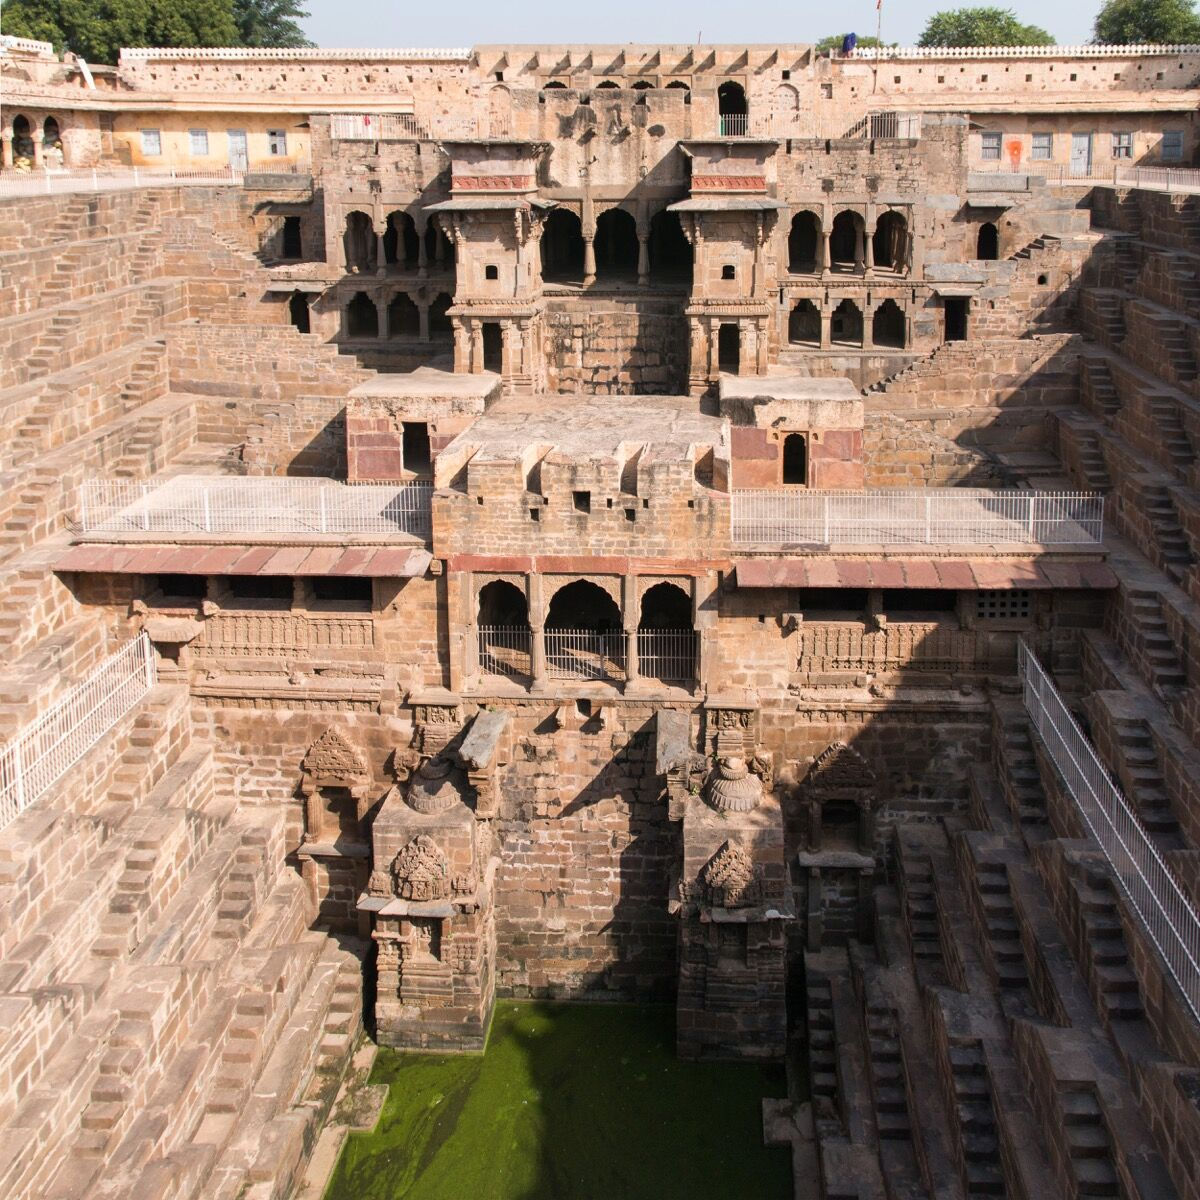 Chand Baori, Jaipur, ca. 9th century. Image via Wikimedia Commons.